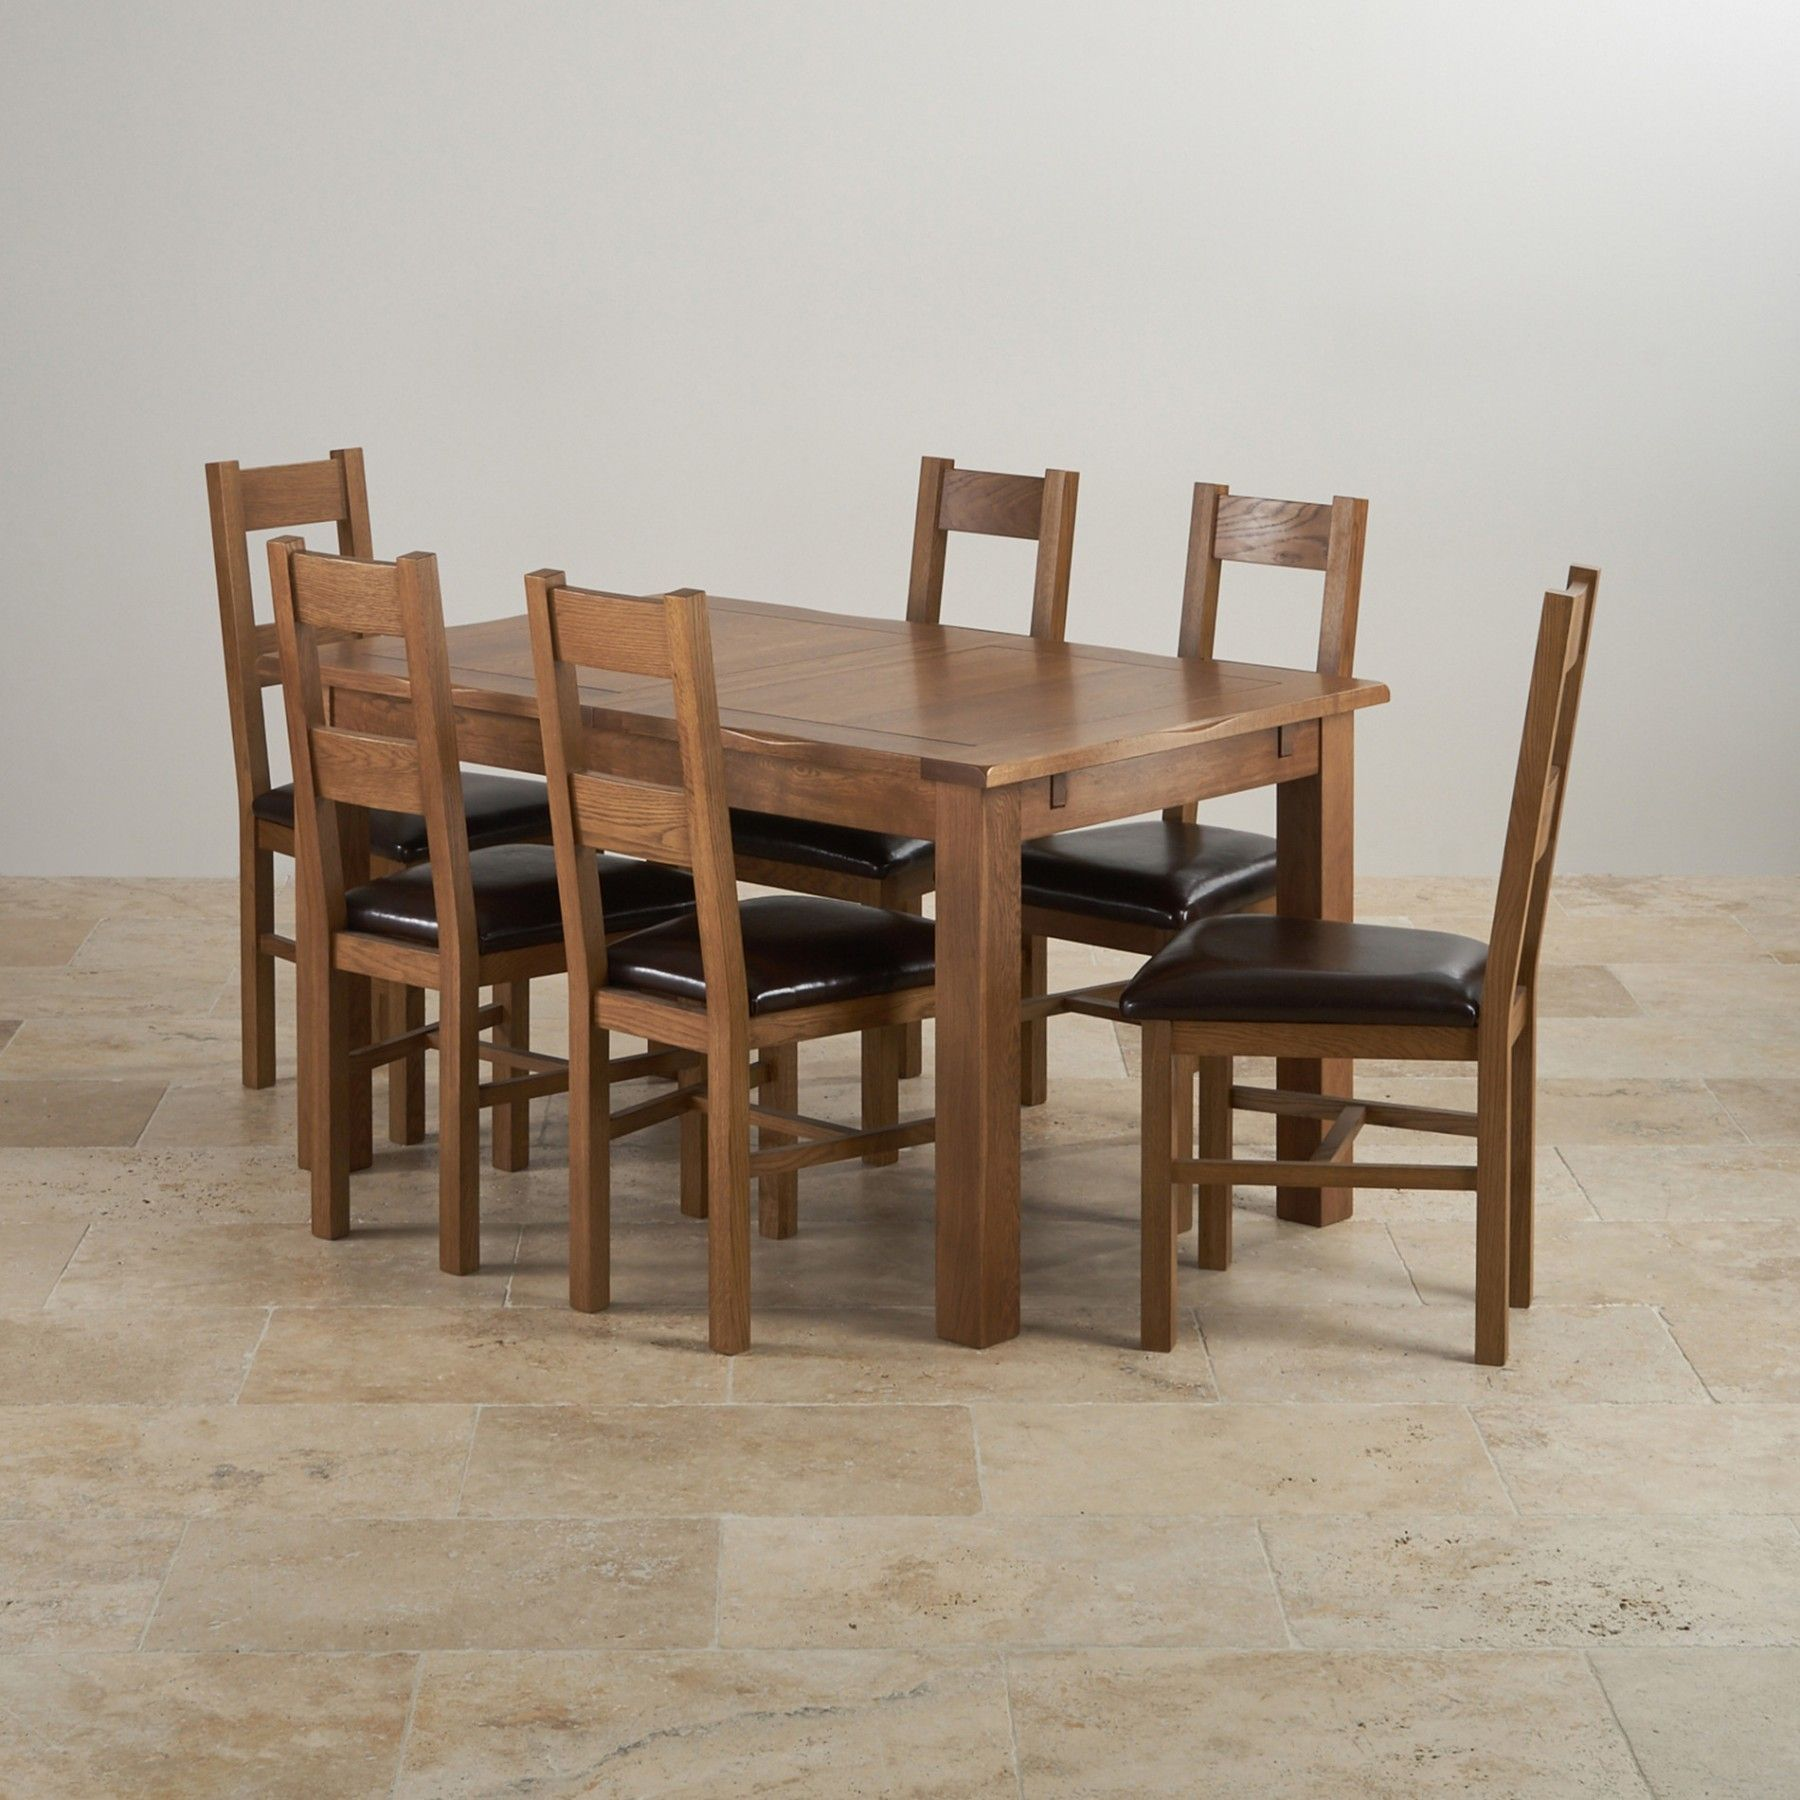 Rushmere Rustic Solid Oak Dining Set 4ft 7 Extending Table With